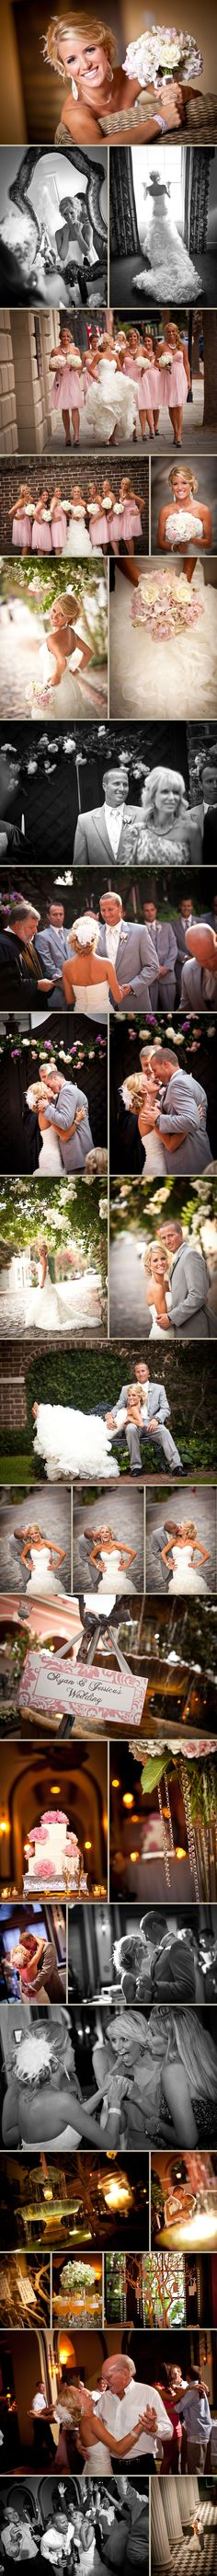 All great Wedding photo ideas and make up ideas!